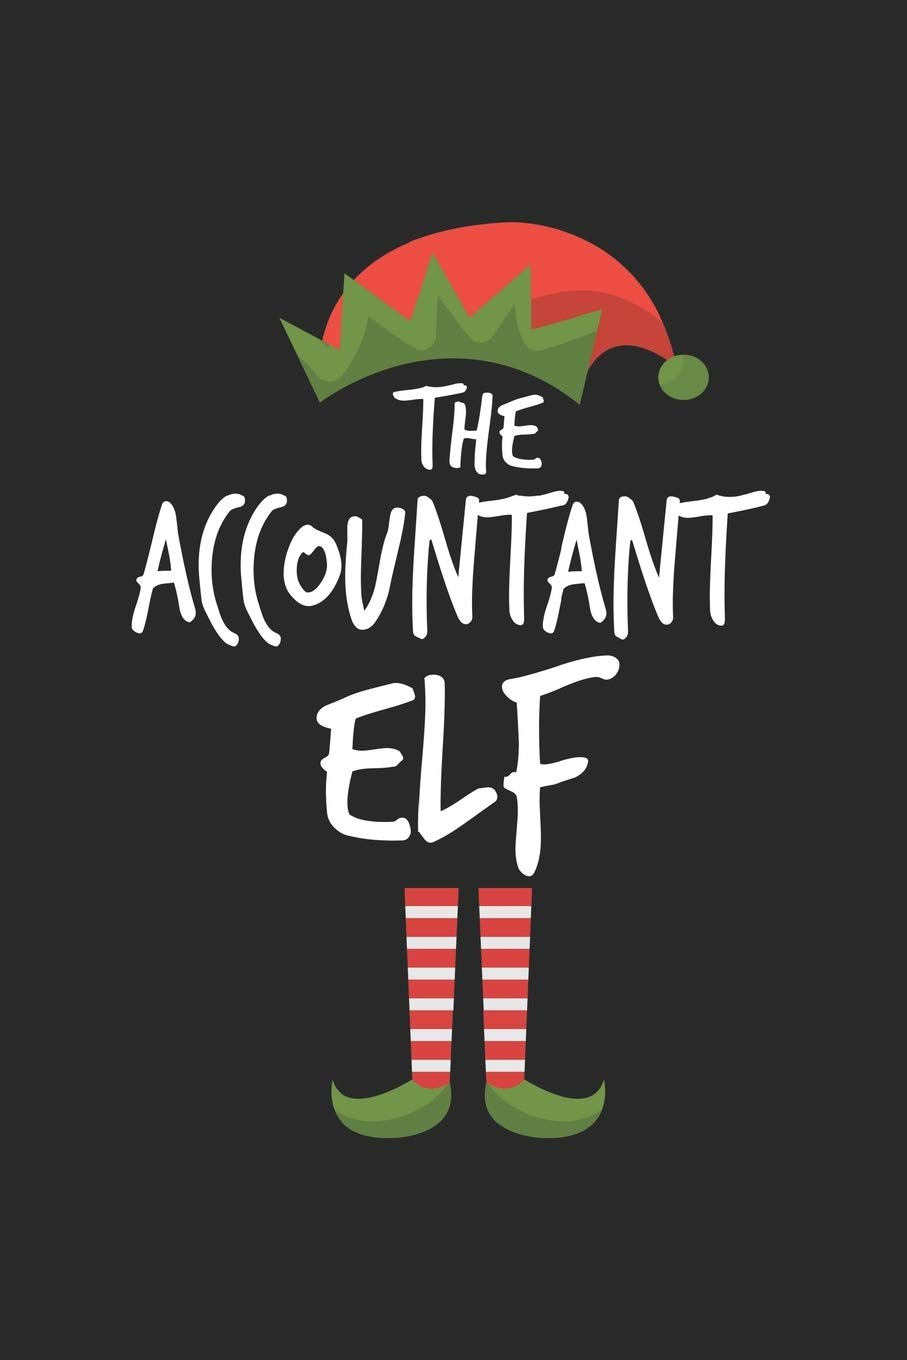 Interview Series - Santa's Accountant